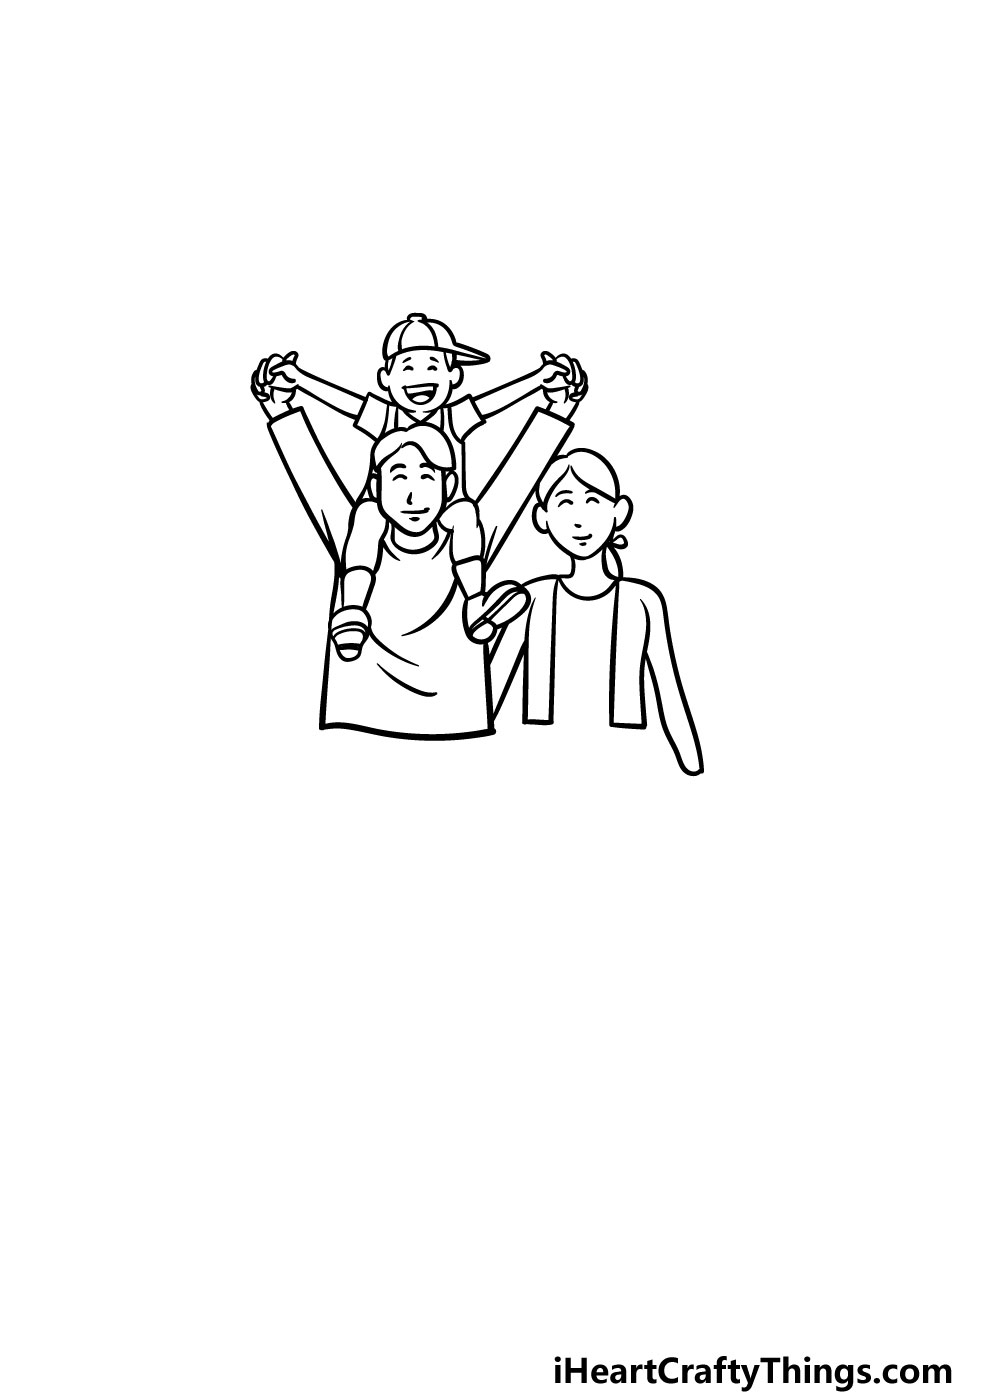 drawing a family step 5